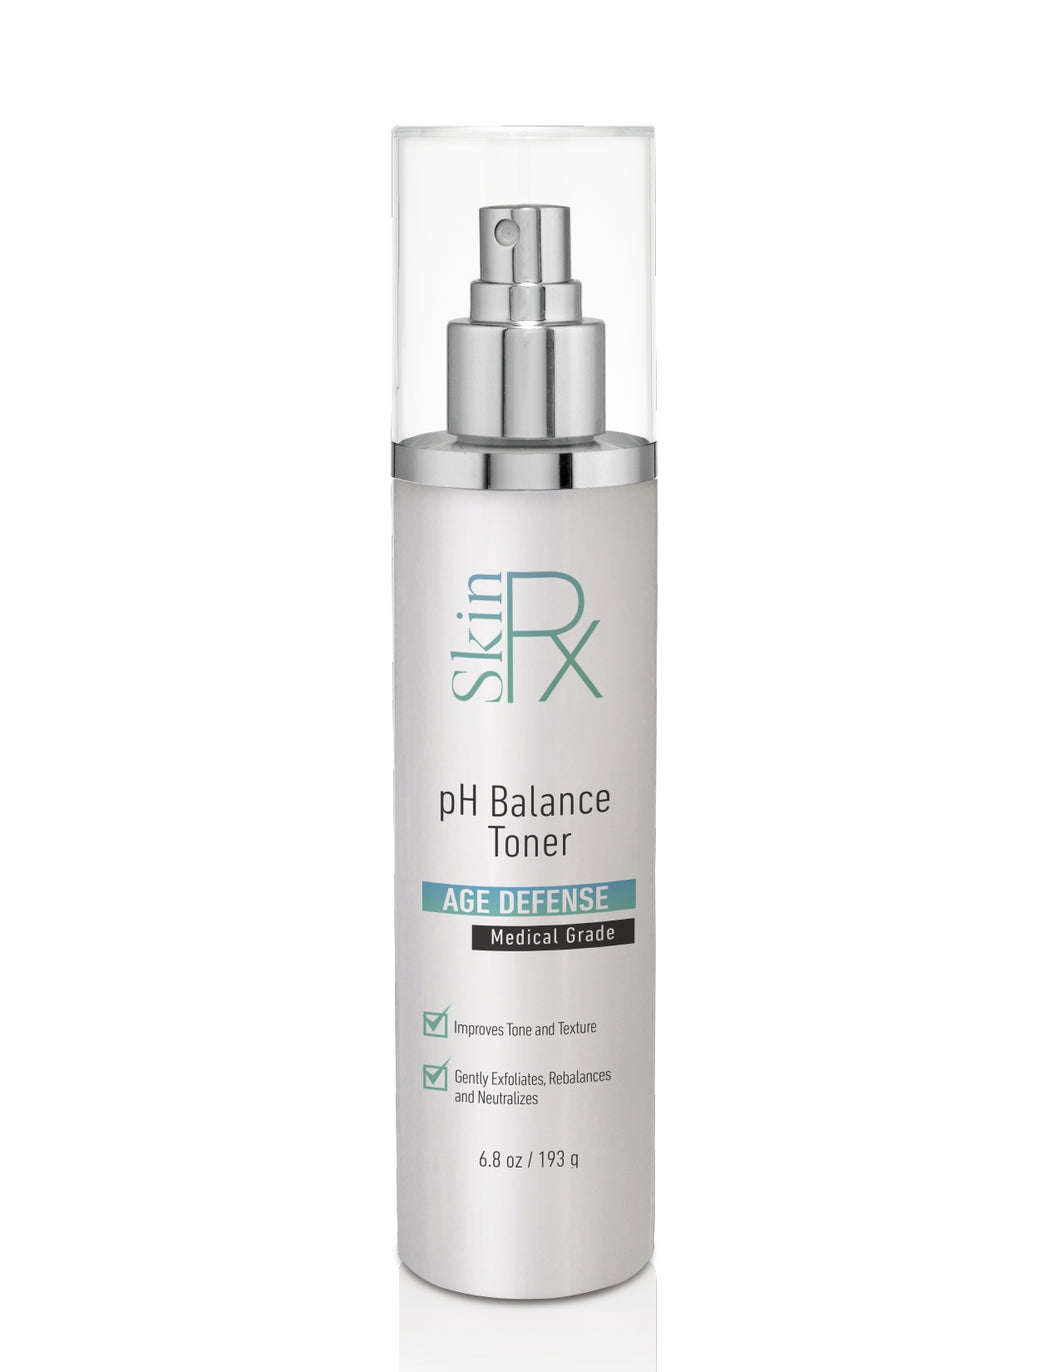 PH Balance Toner 6.8 fl oz.